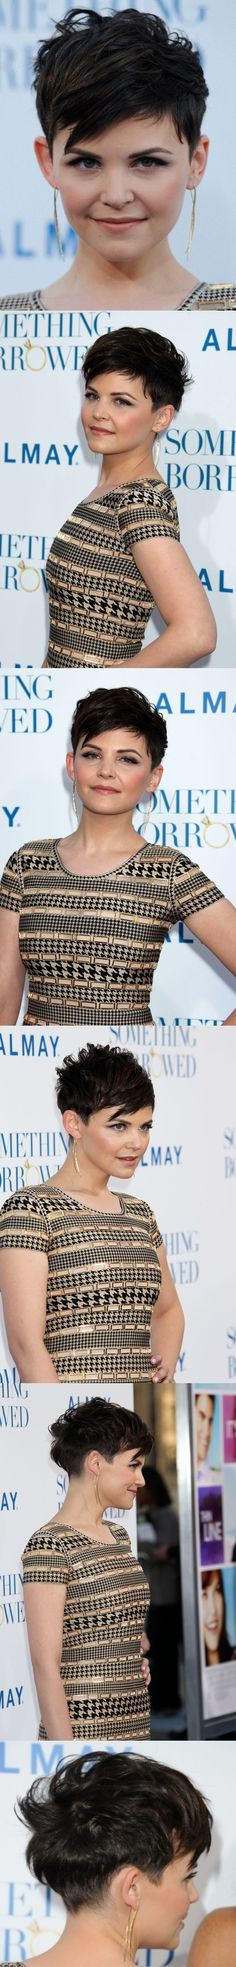 All views of Ginnifer Goodwin haircut